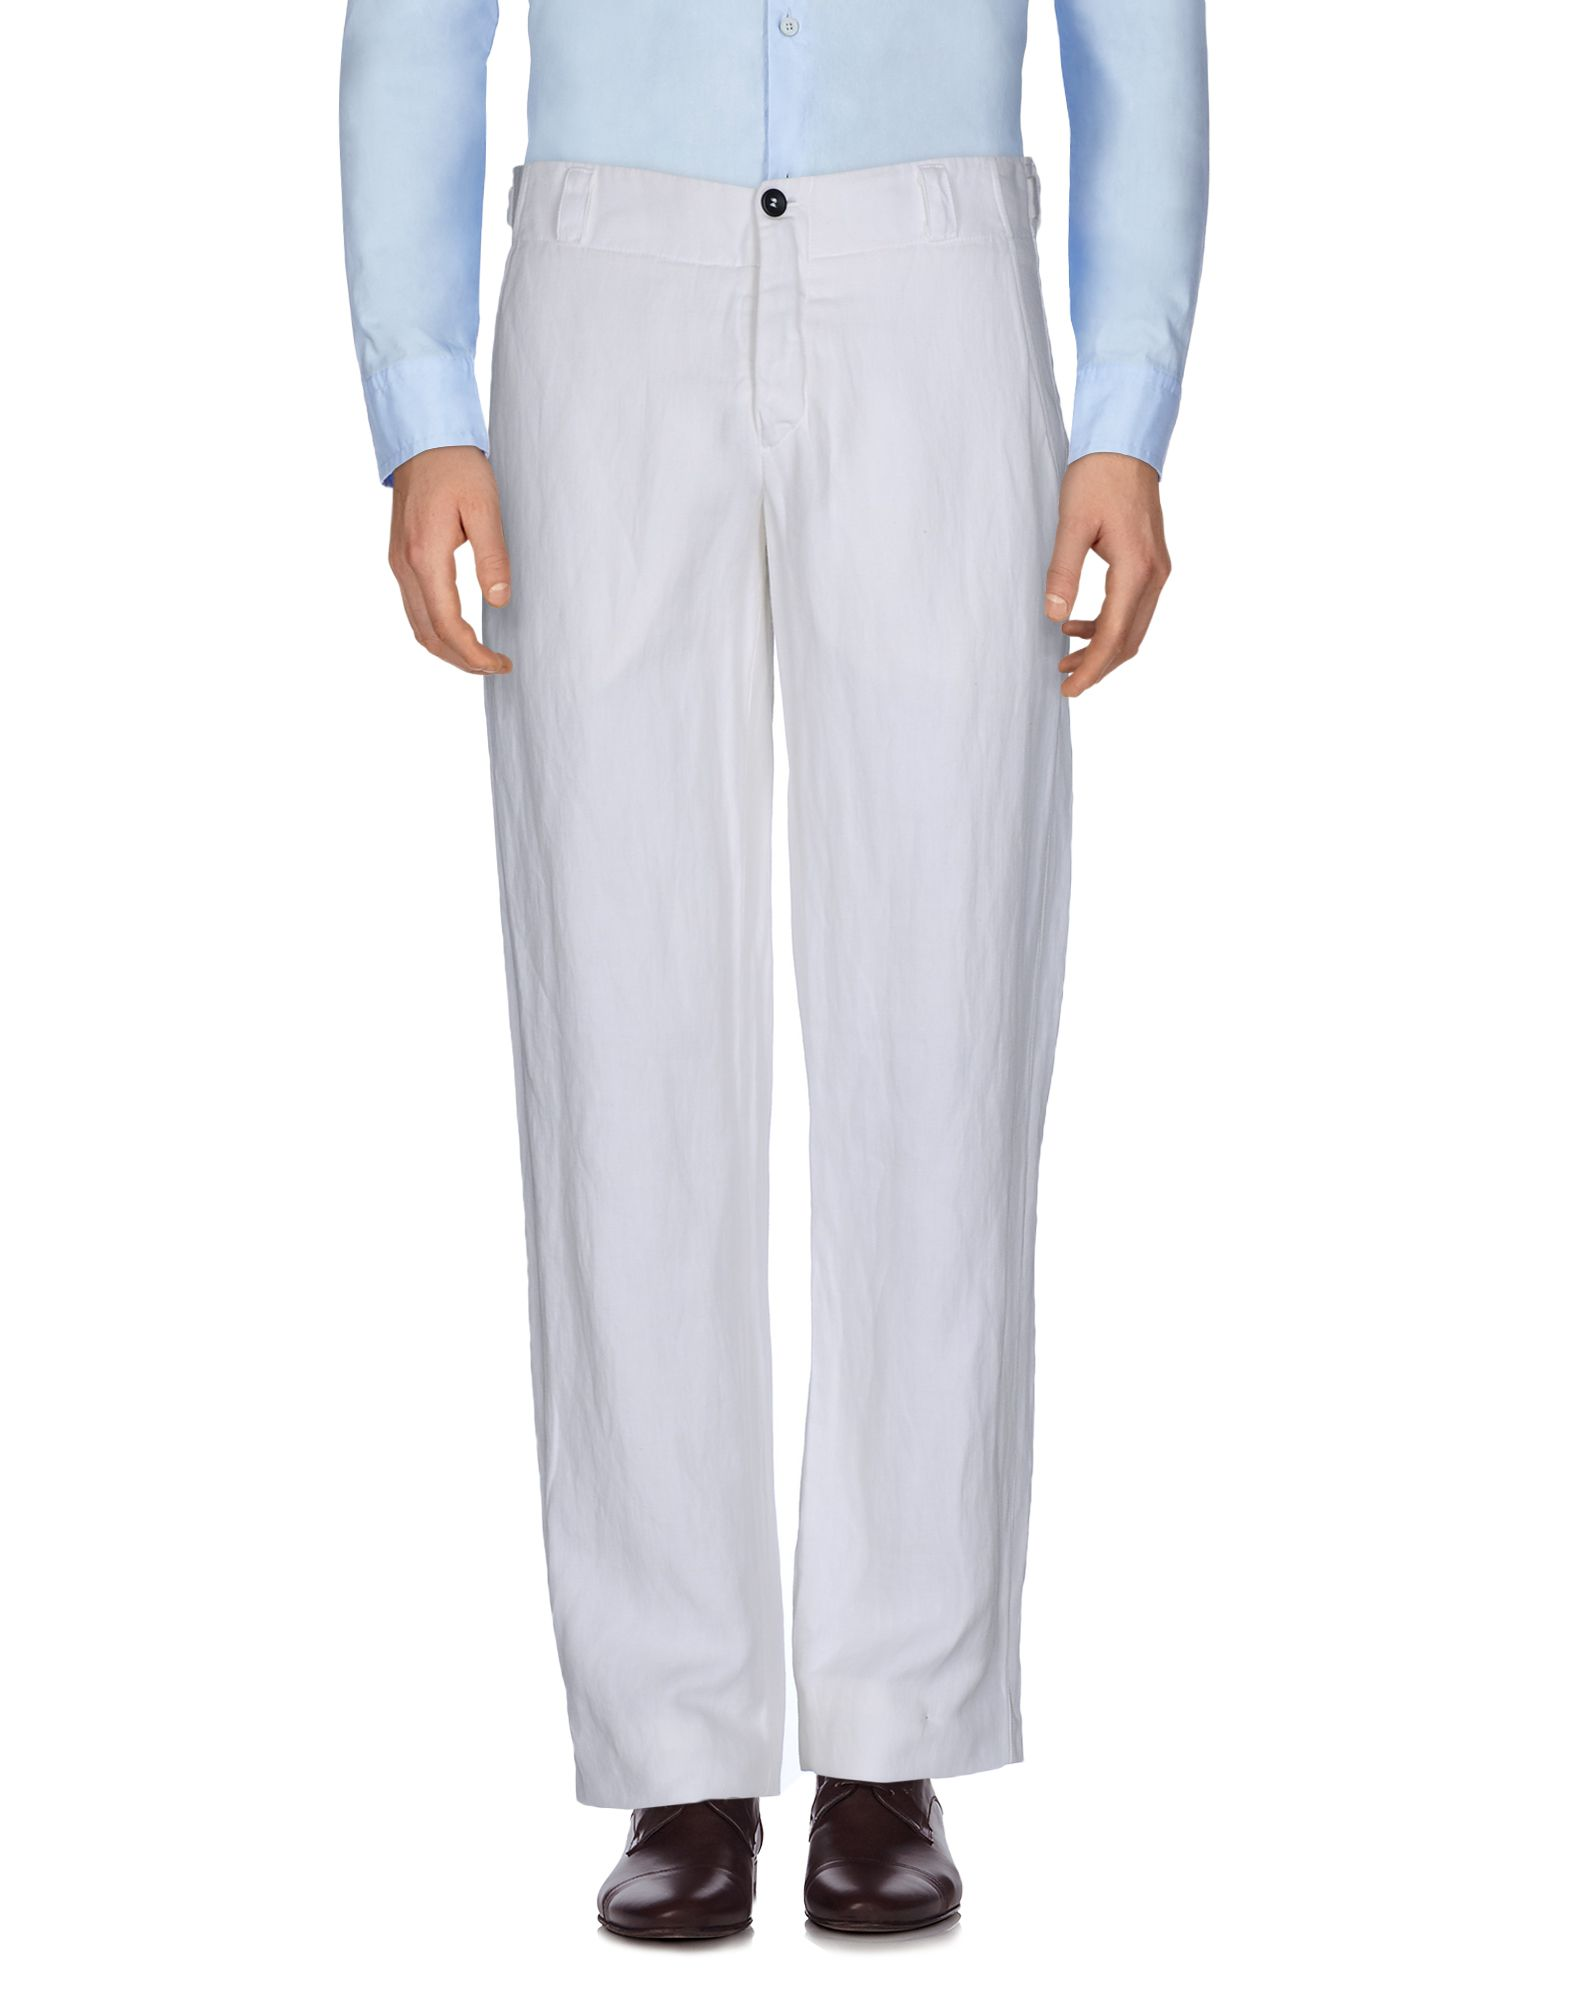 HANNES ROETHER Casual Pants in White